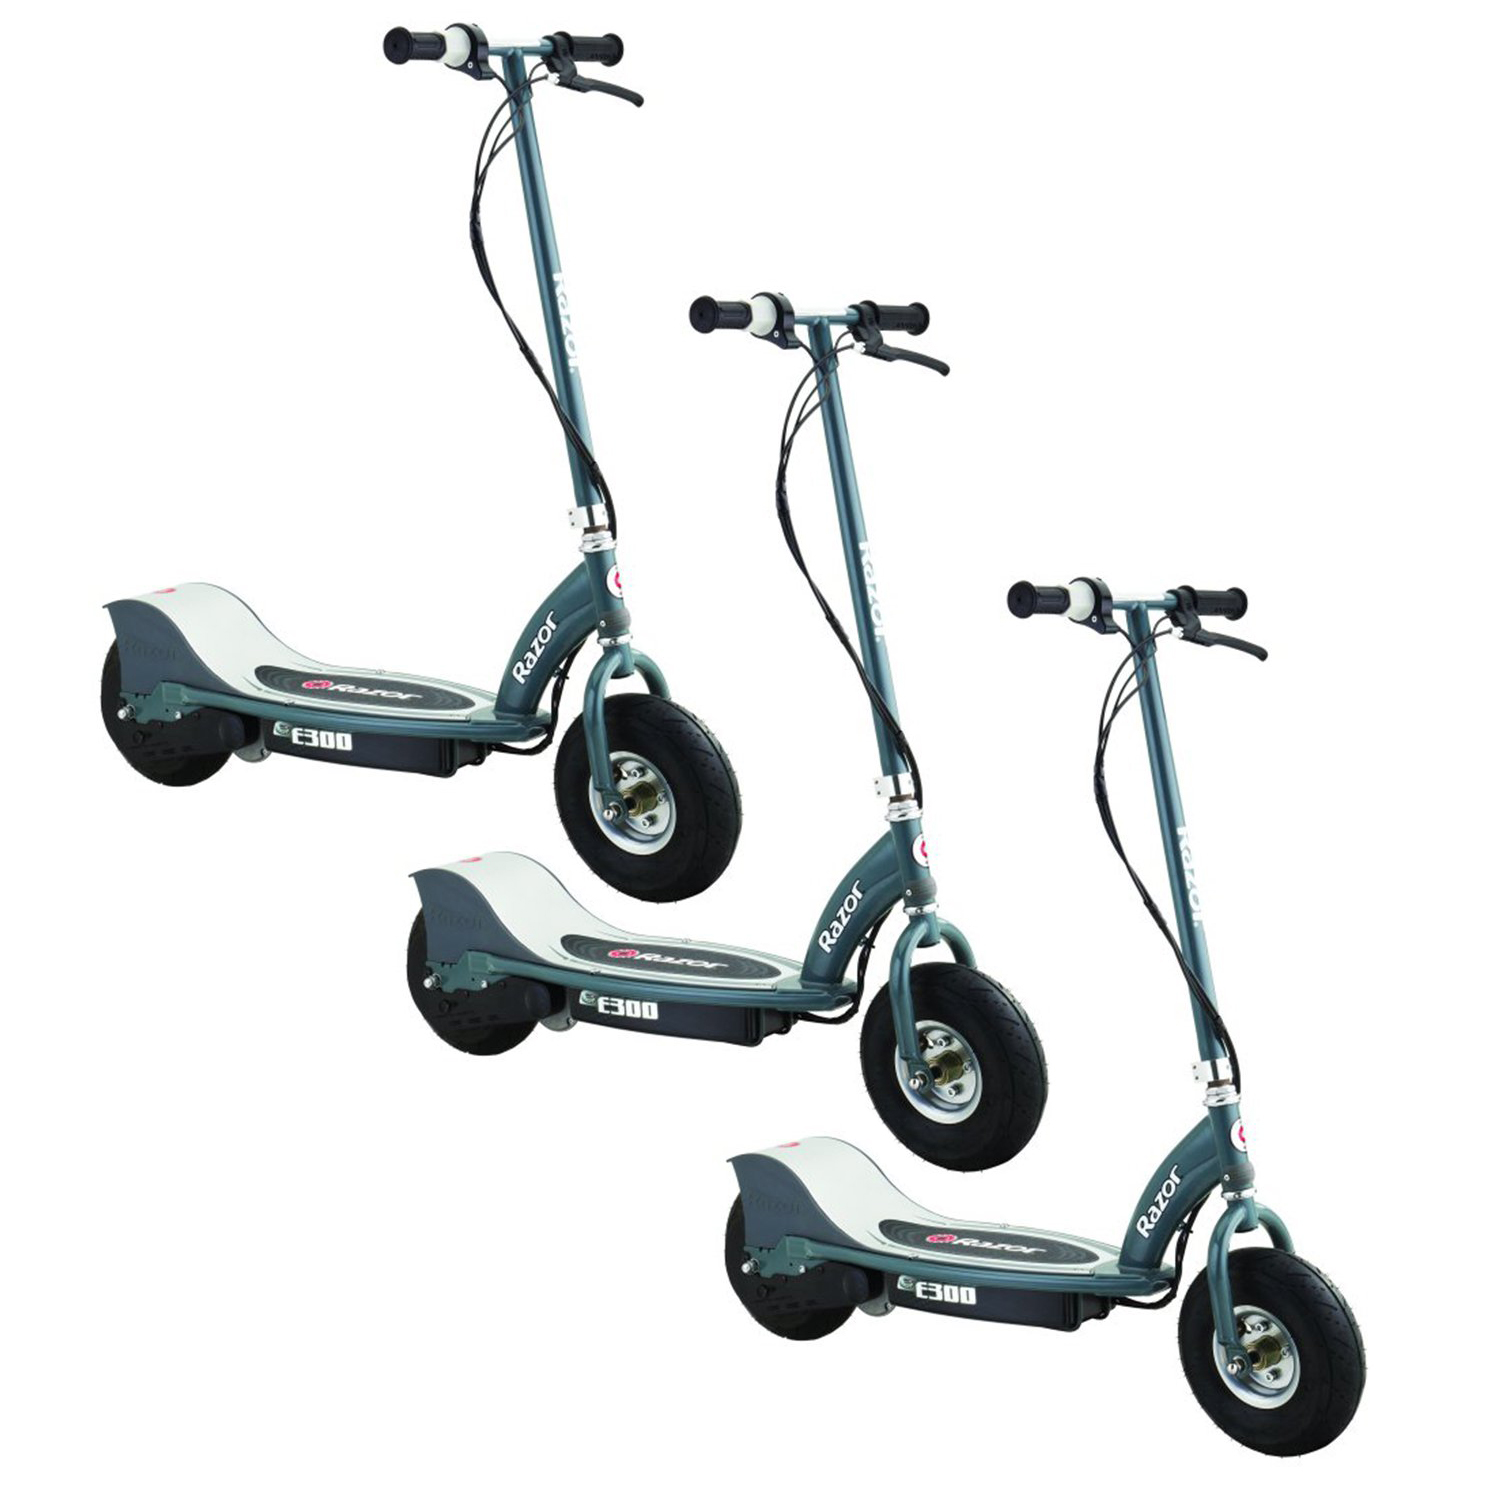 Razor E300 Electric Motorized Rechargeable Ride On Kids Scooter, Gray (3 Pack) by Razor